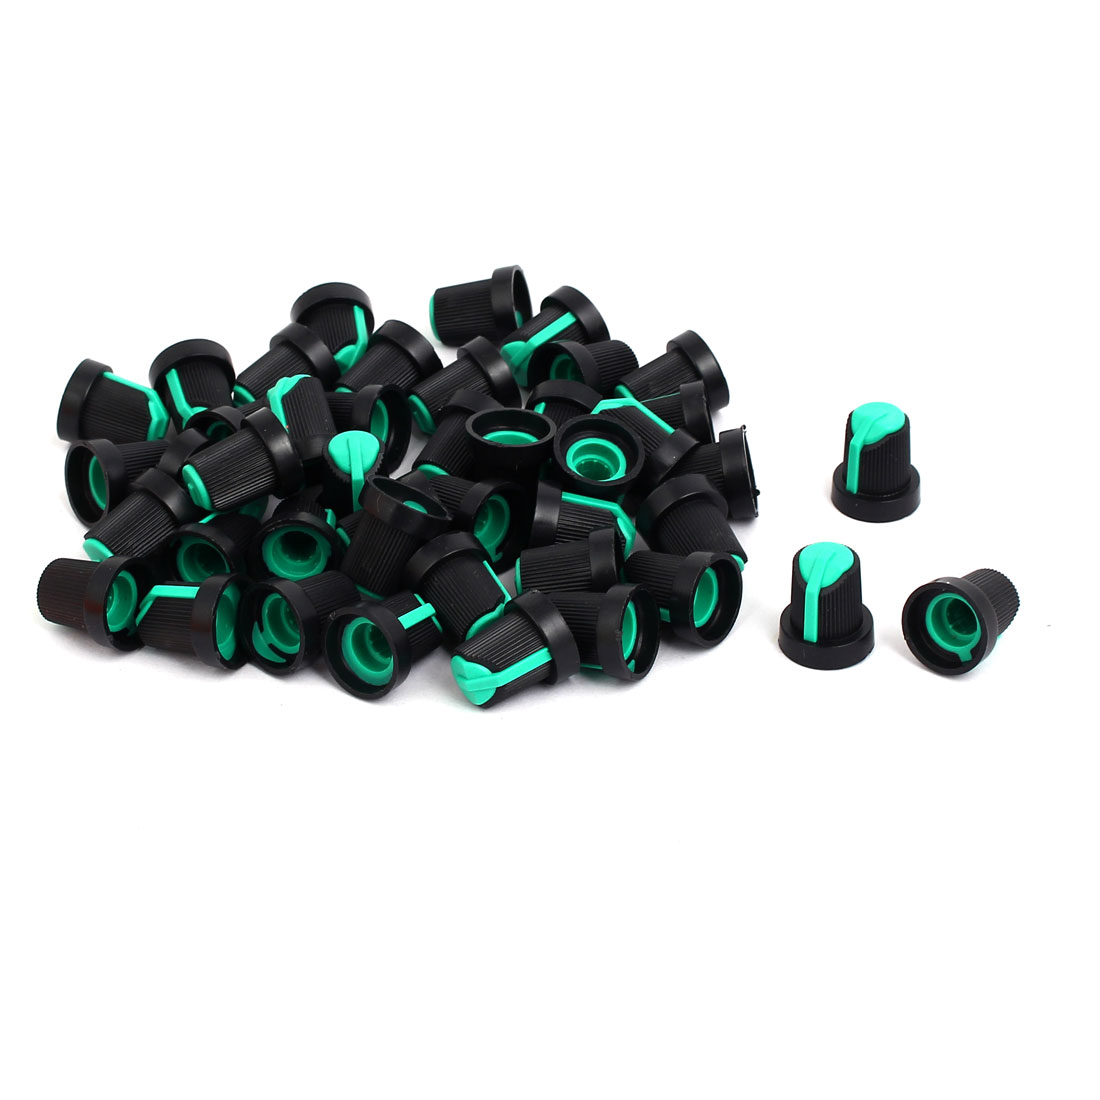 6mm Shaft Hole Dia Potentiometer Pot Knobs Caps Green Black 50 Pcs